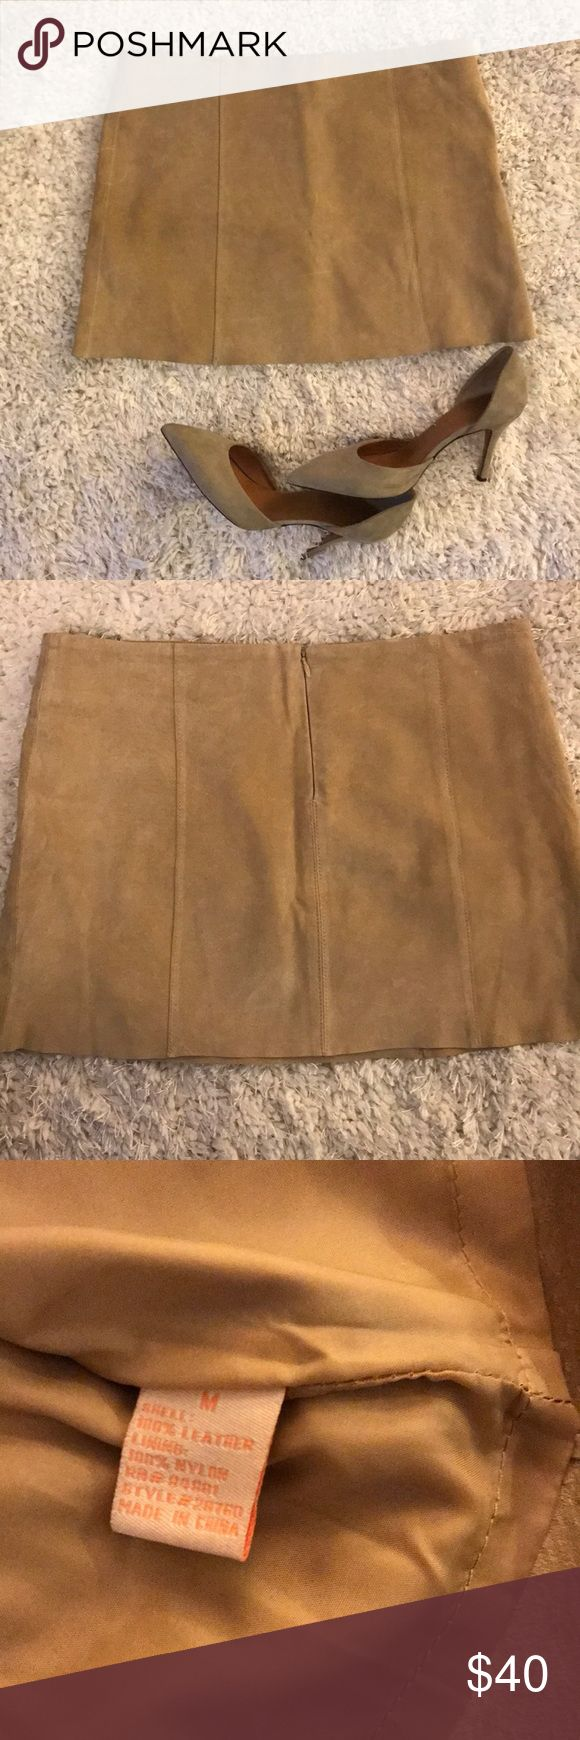 """Forever 21 Suede Mini Skirt Forever 21 100% leather suede mini skirt size Medium. Worn twice. Has a small pen mark as seen in picture. 13"""" length 15"""" waist Forever 21 Skirts Mini"""